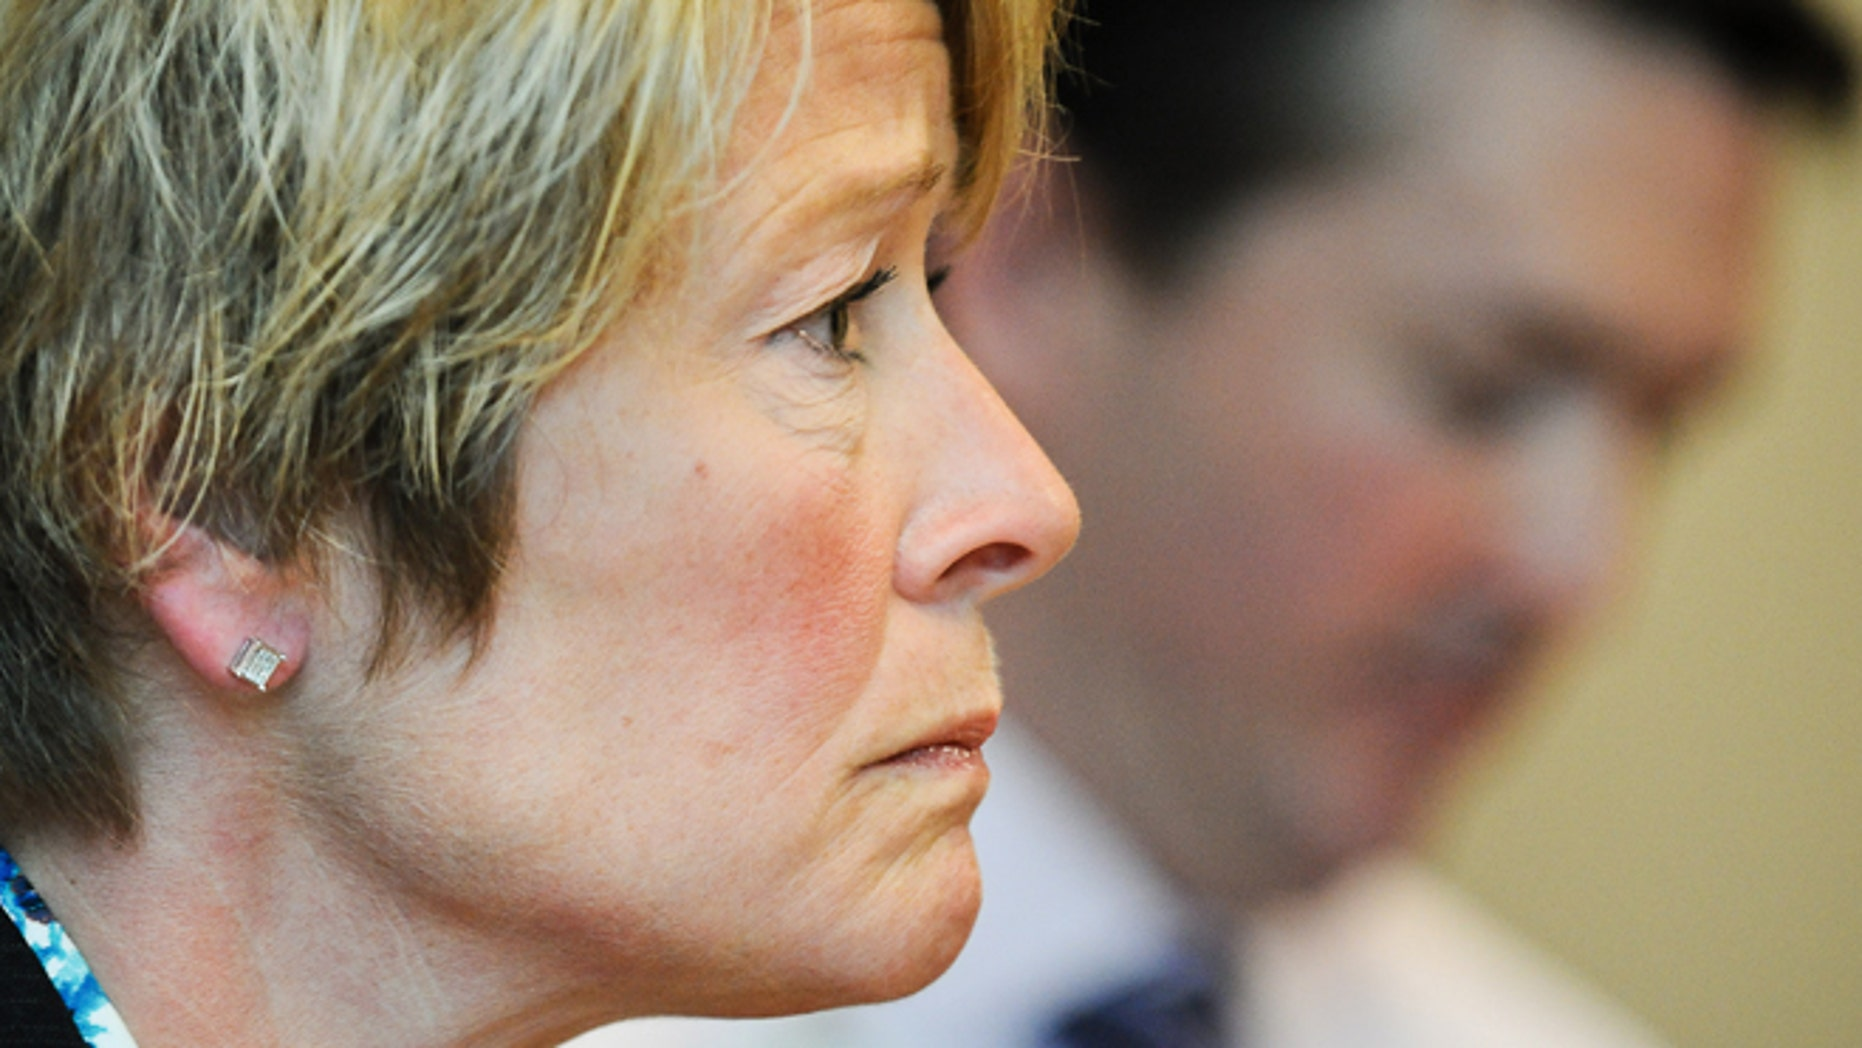 April 17, 2013: Chris Boese, Chief Nursing Office and Vice President of Patient Care at Regions Hospital, listens to a reporters question during a news conference at the hospital in St. Paul, Minn.